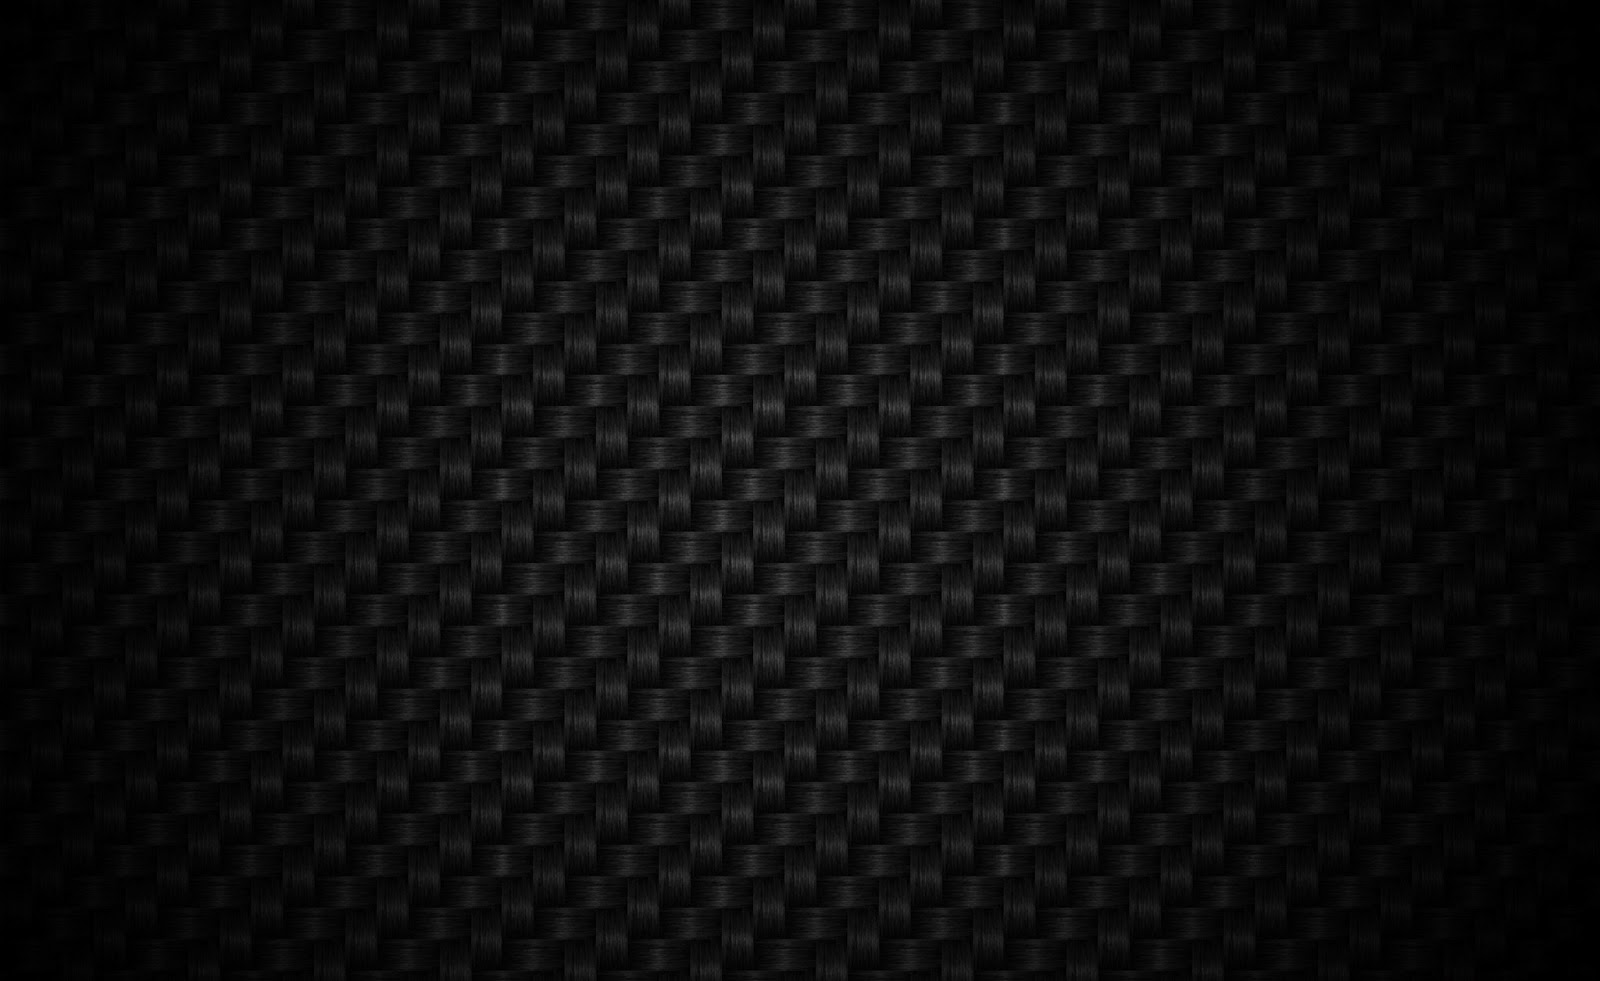 black wallpaper pattern - photo #10